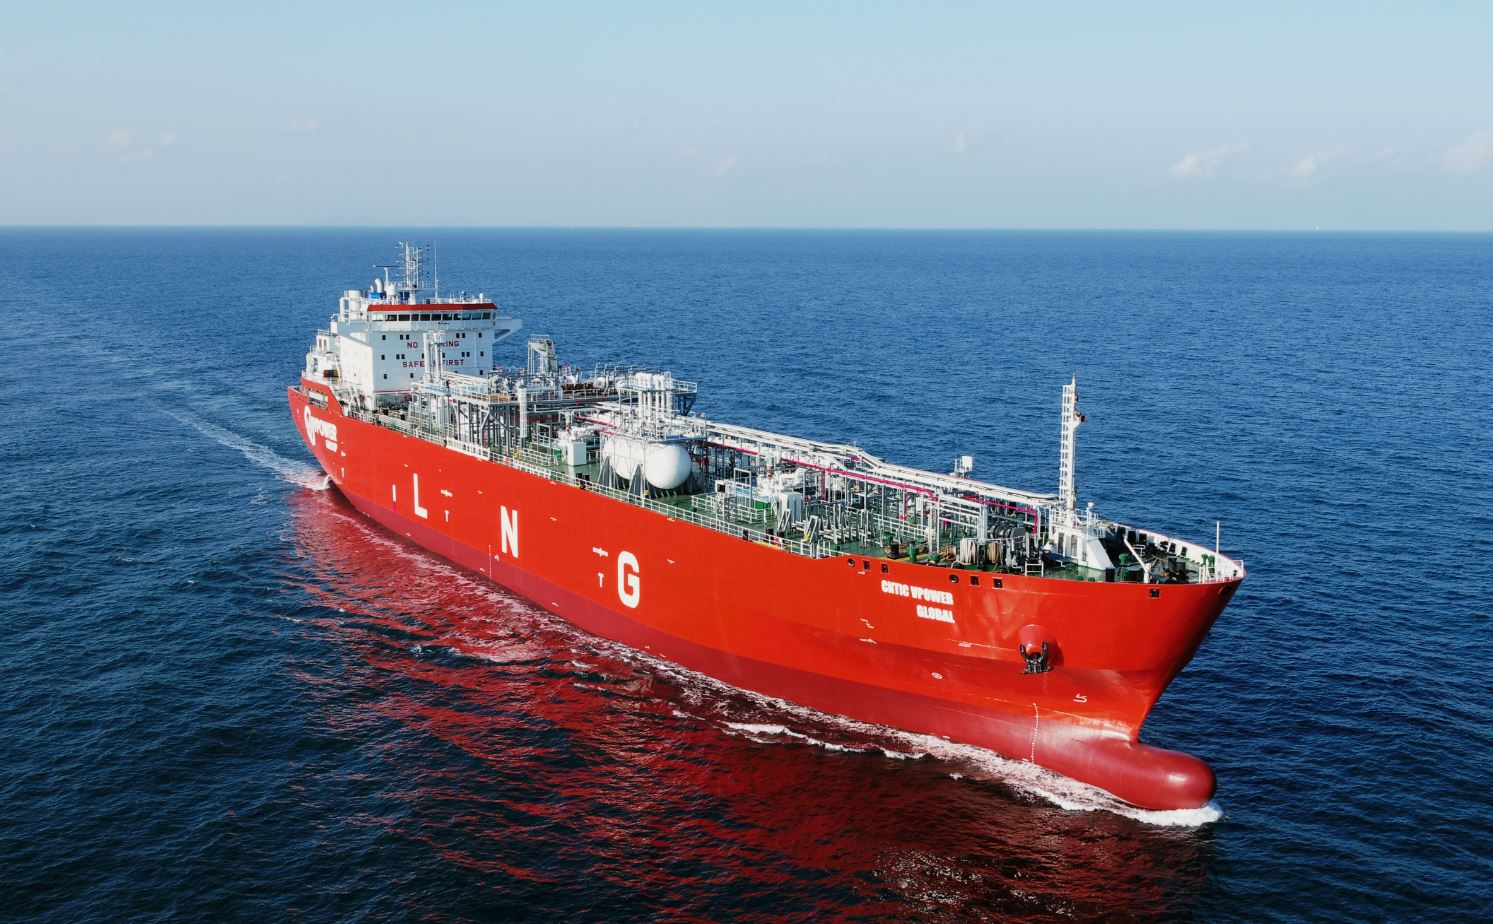 Cntic Vpover Global LNG carrier